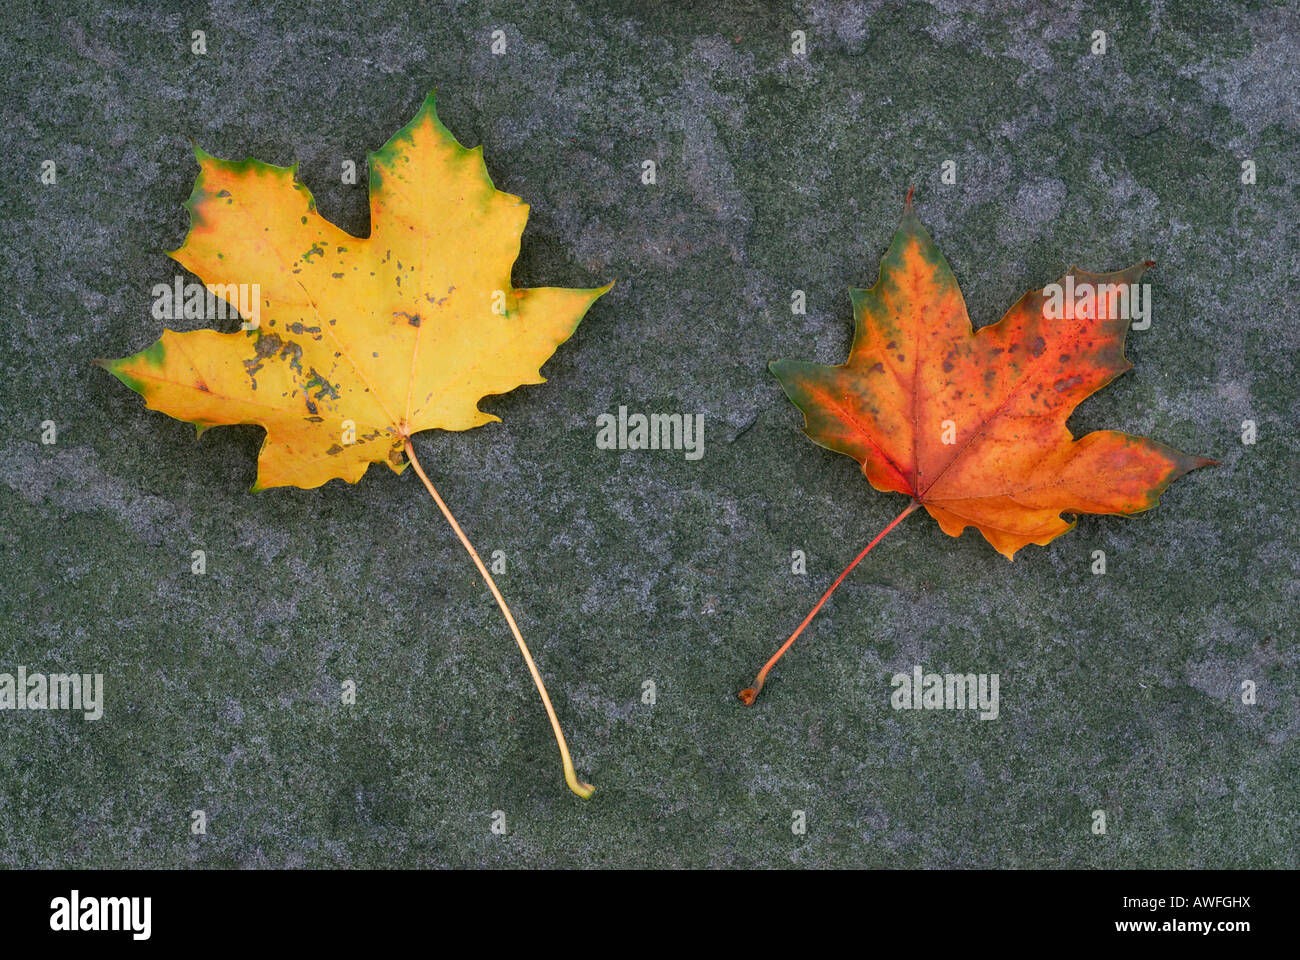 Autumn leaves, two colourful maple leaves laying on slate - Stock Image